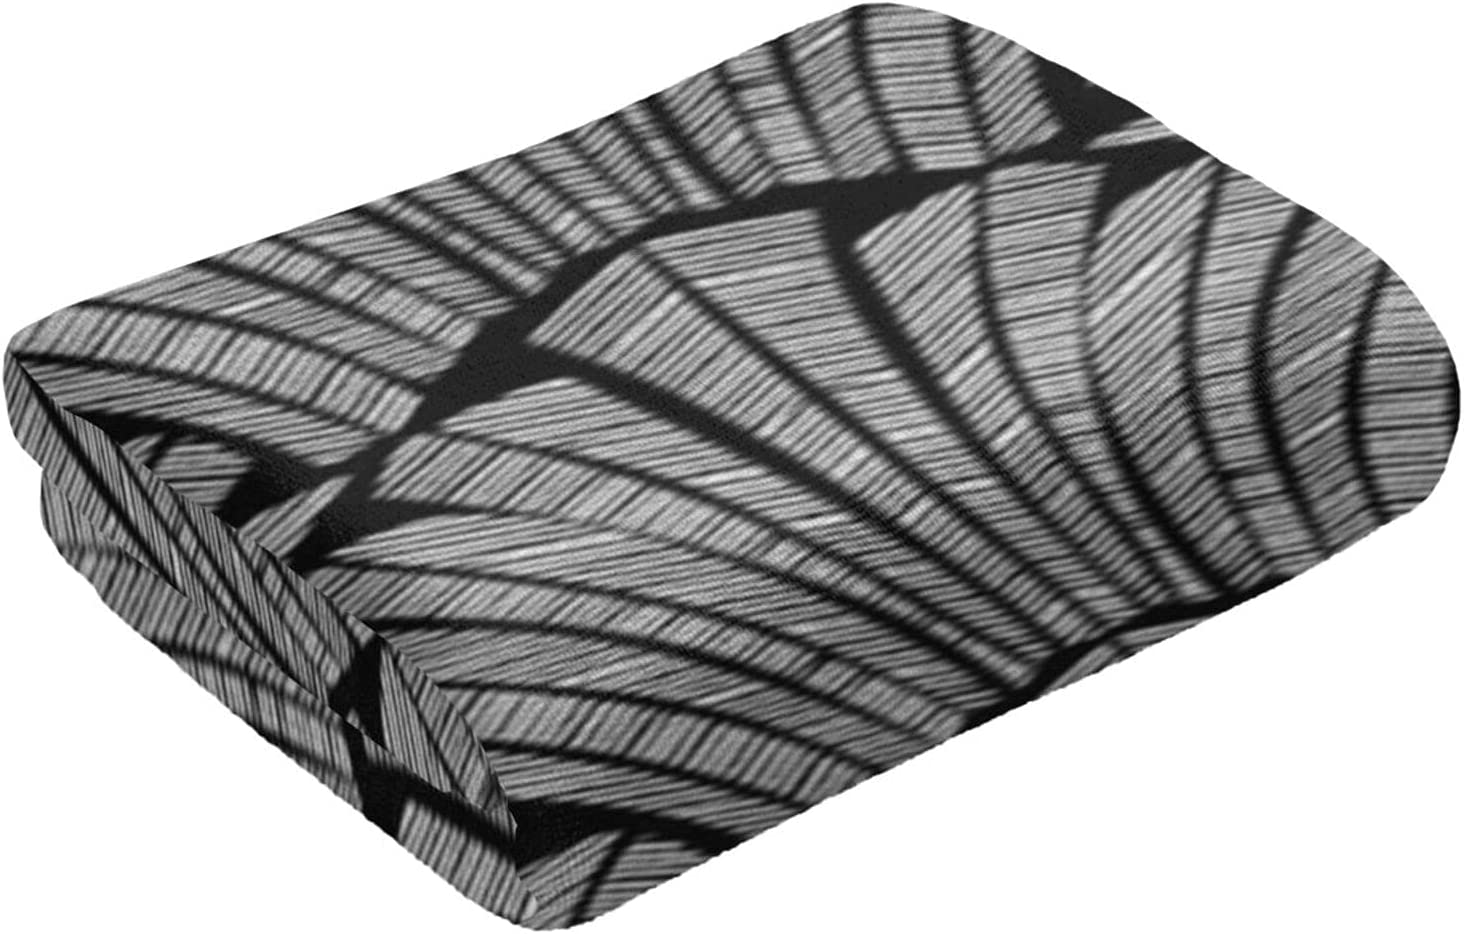 Towels Hand Washcloths 27.5x12 Max 72% Max 51% OFF OFF Inch Polyester Fingert